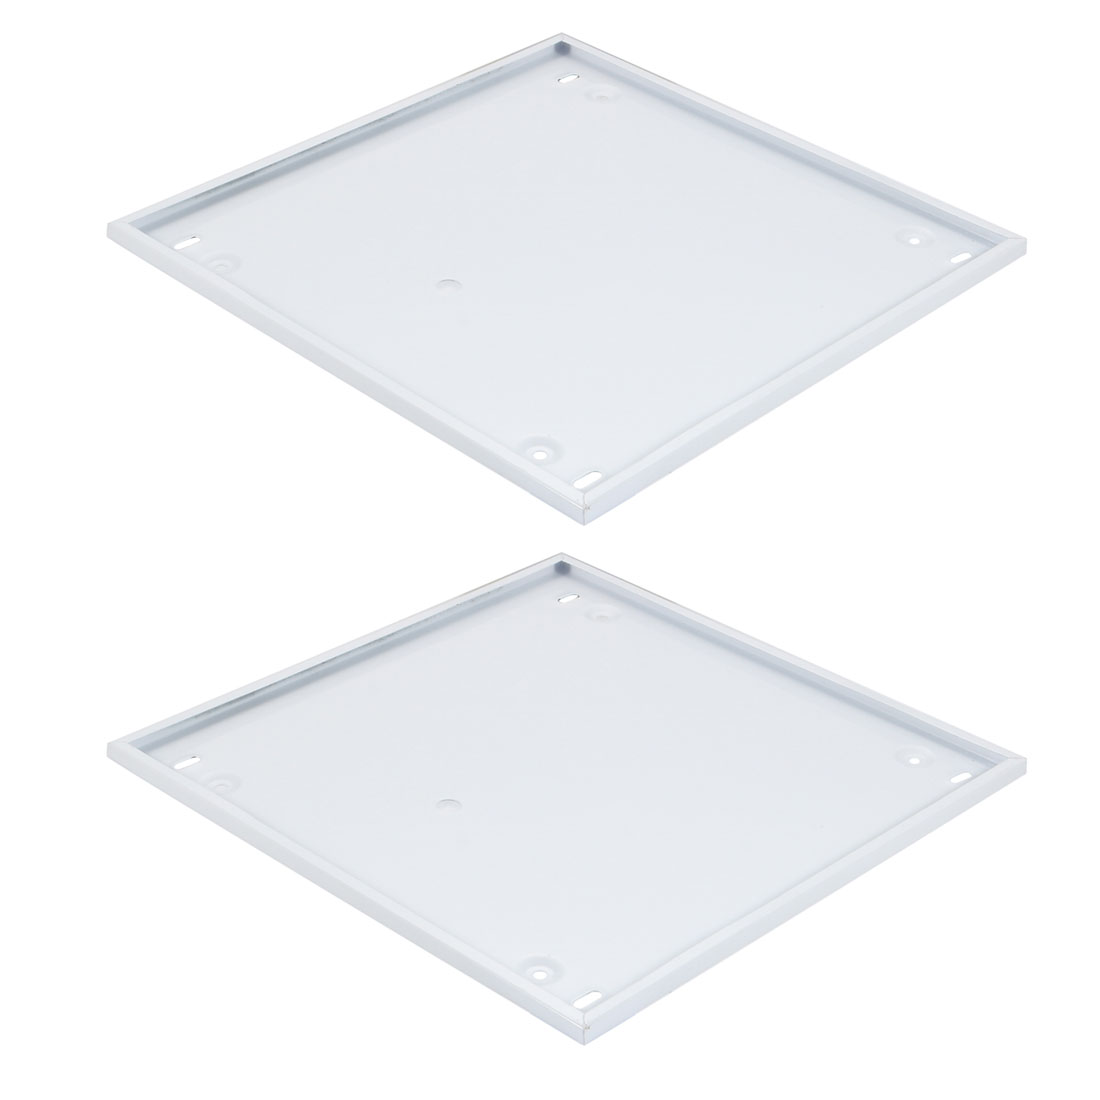 2pcs 300mm x 300mm Pendant Lamp Ceiling Plates Square Base Chassis White